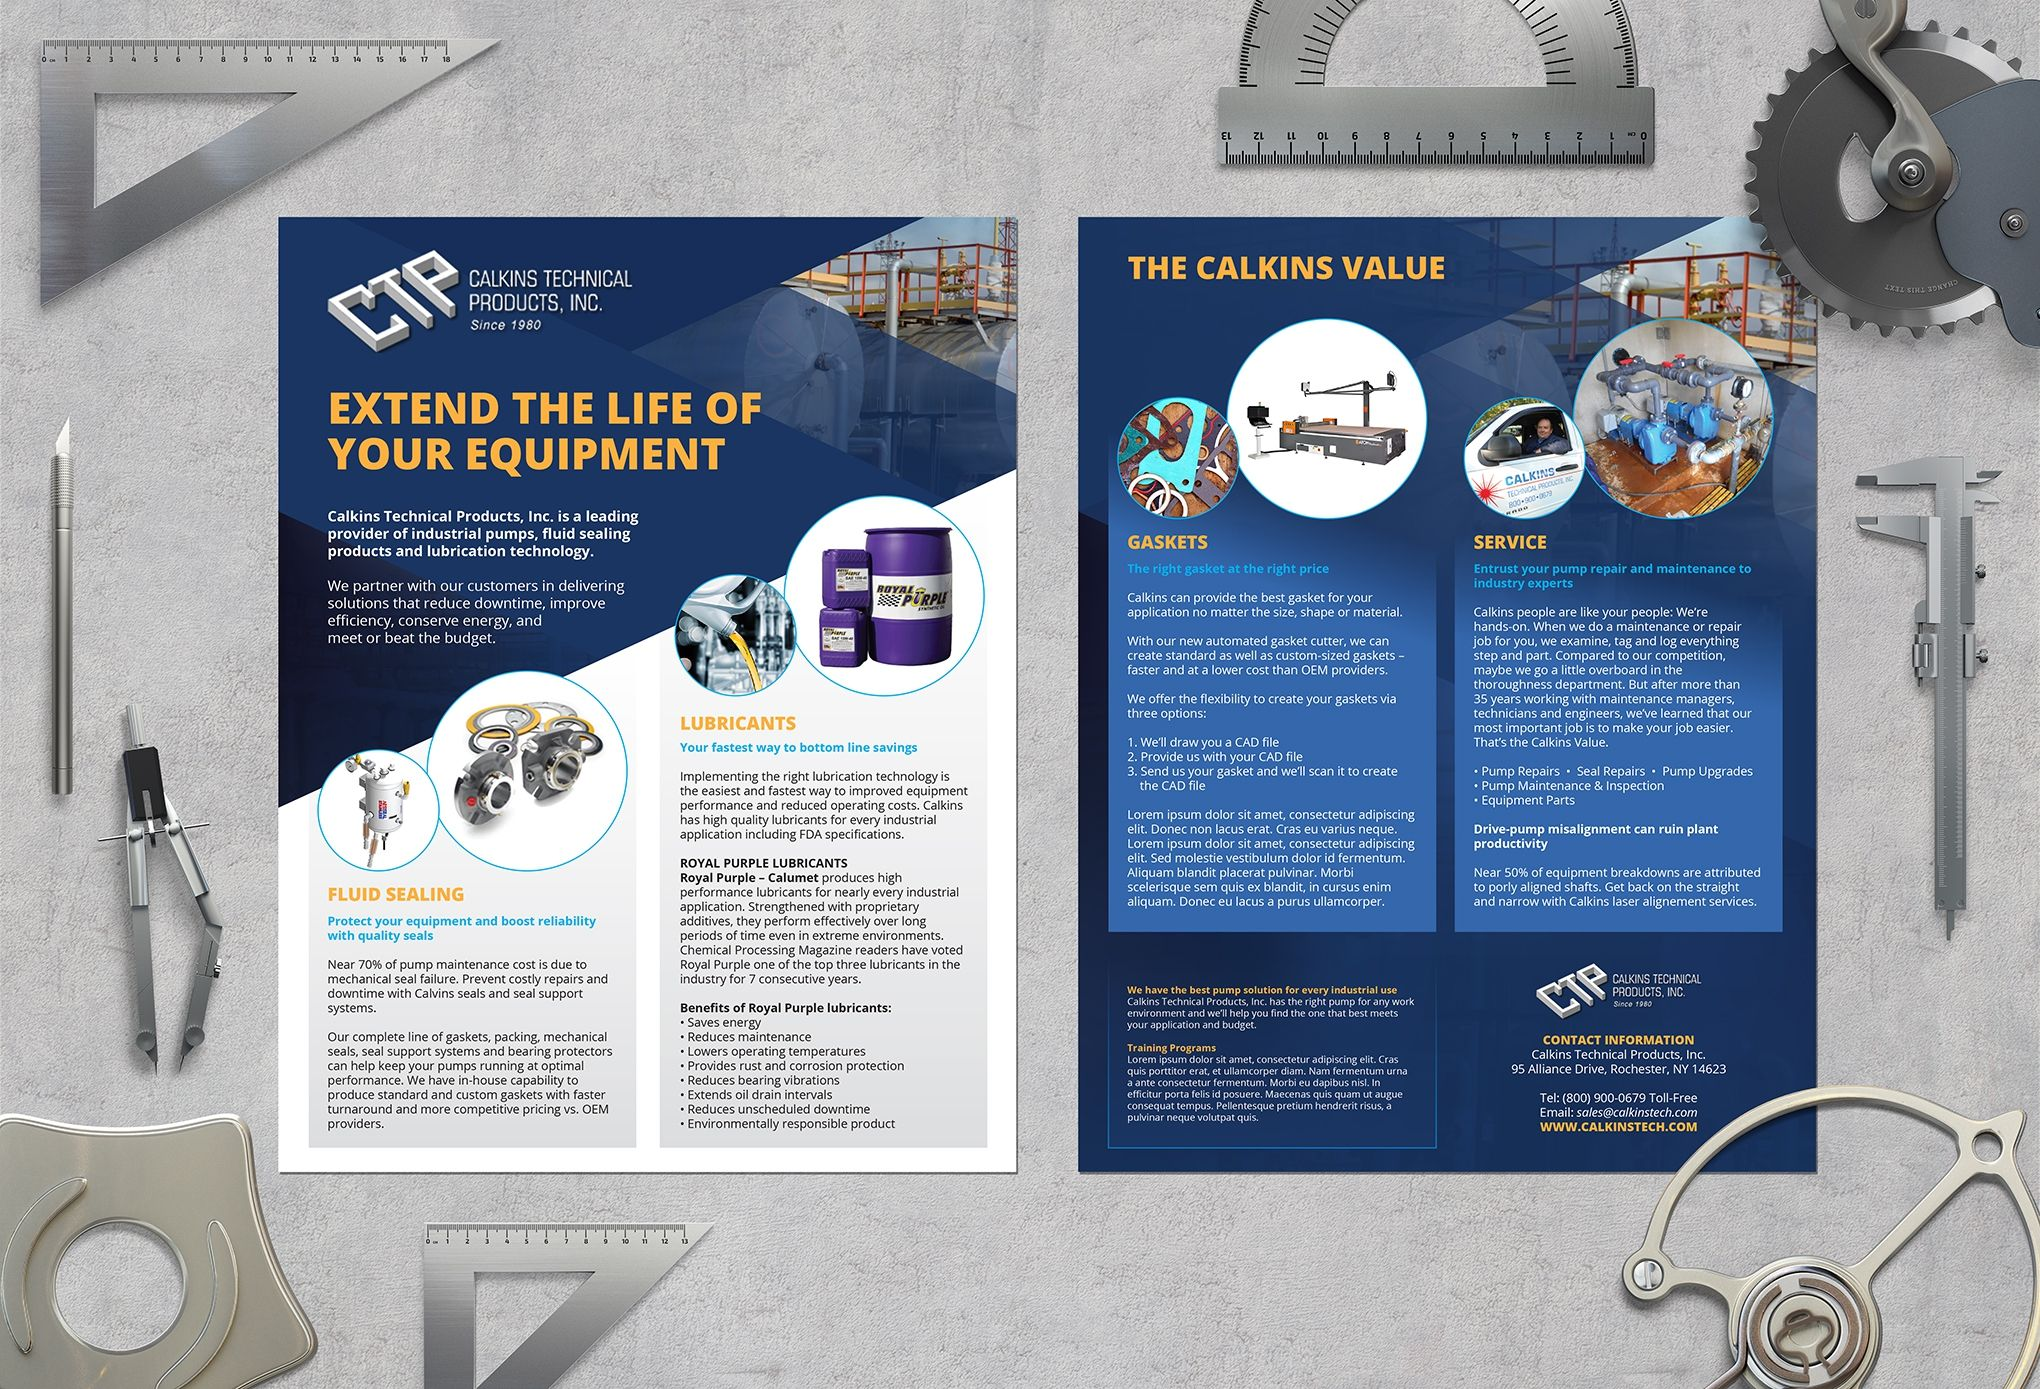 designs design a sales flyer for calkins technical products